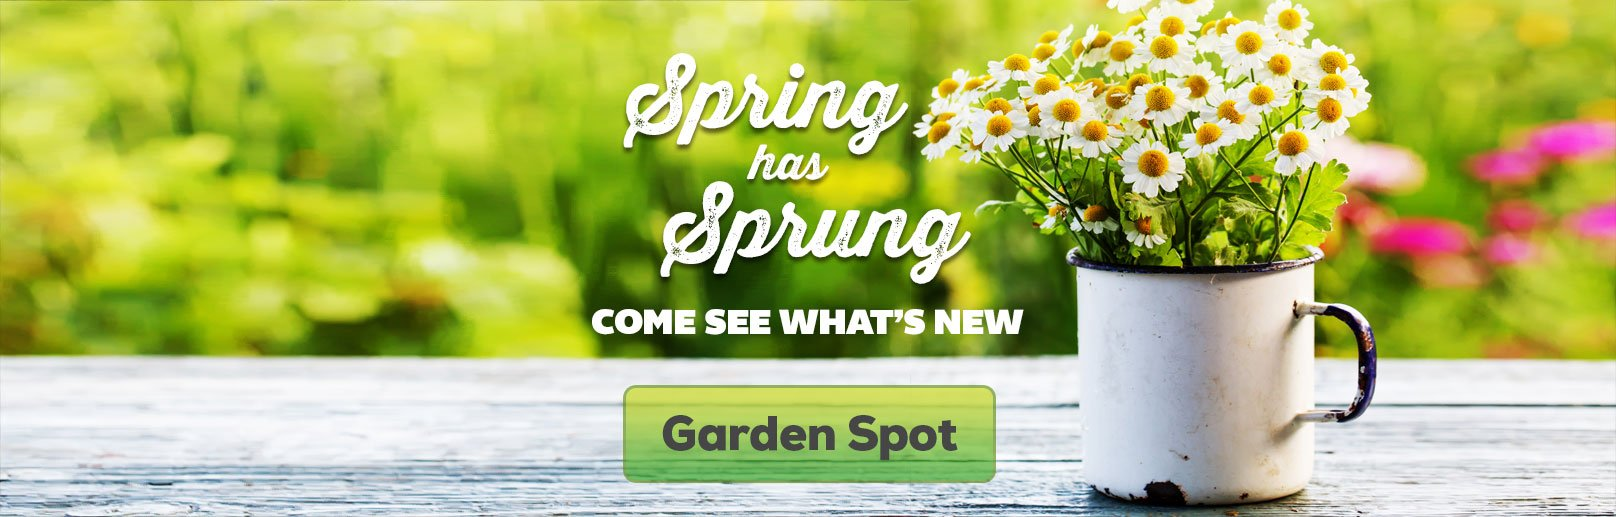 Spring At Art Knapp Surrey - Plants, Flowers & More